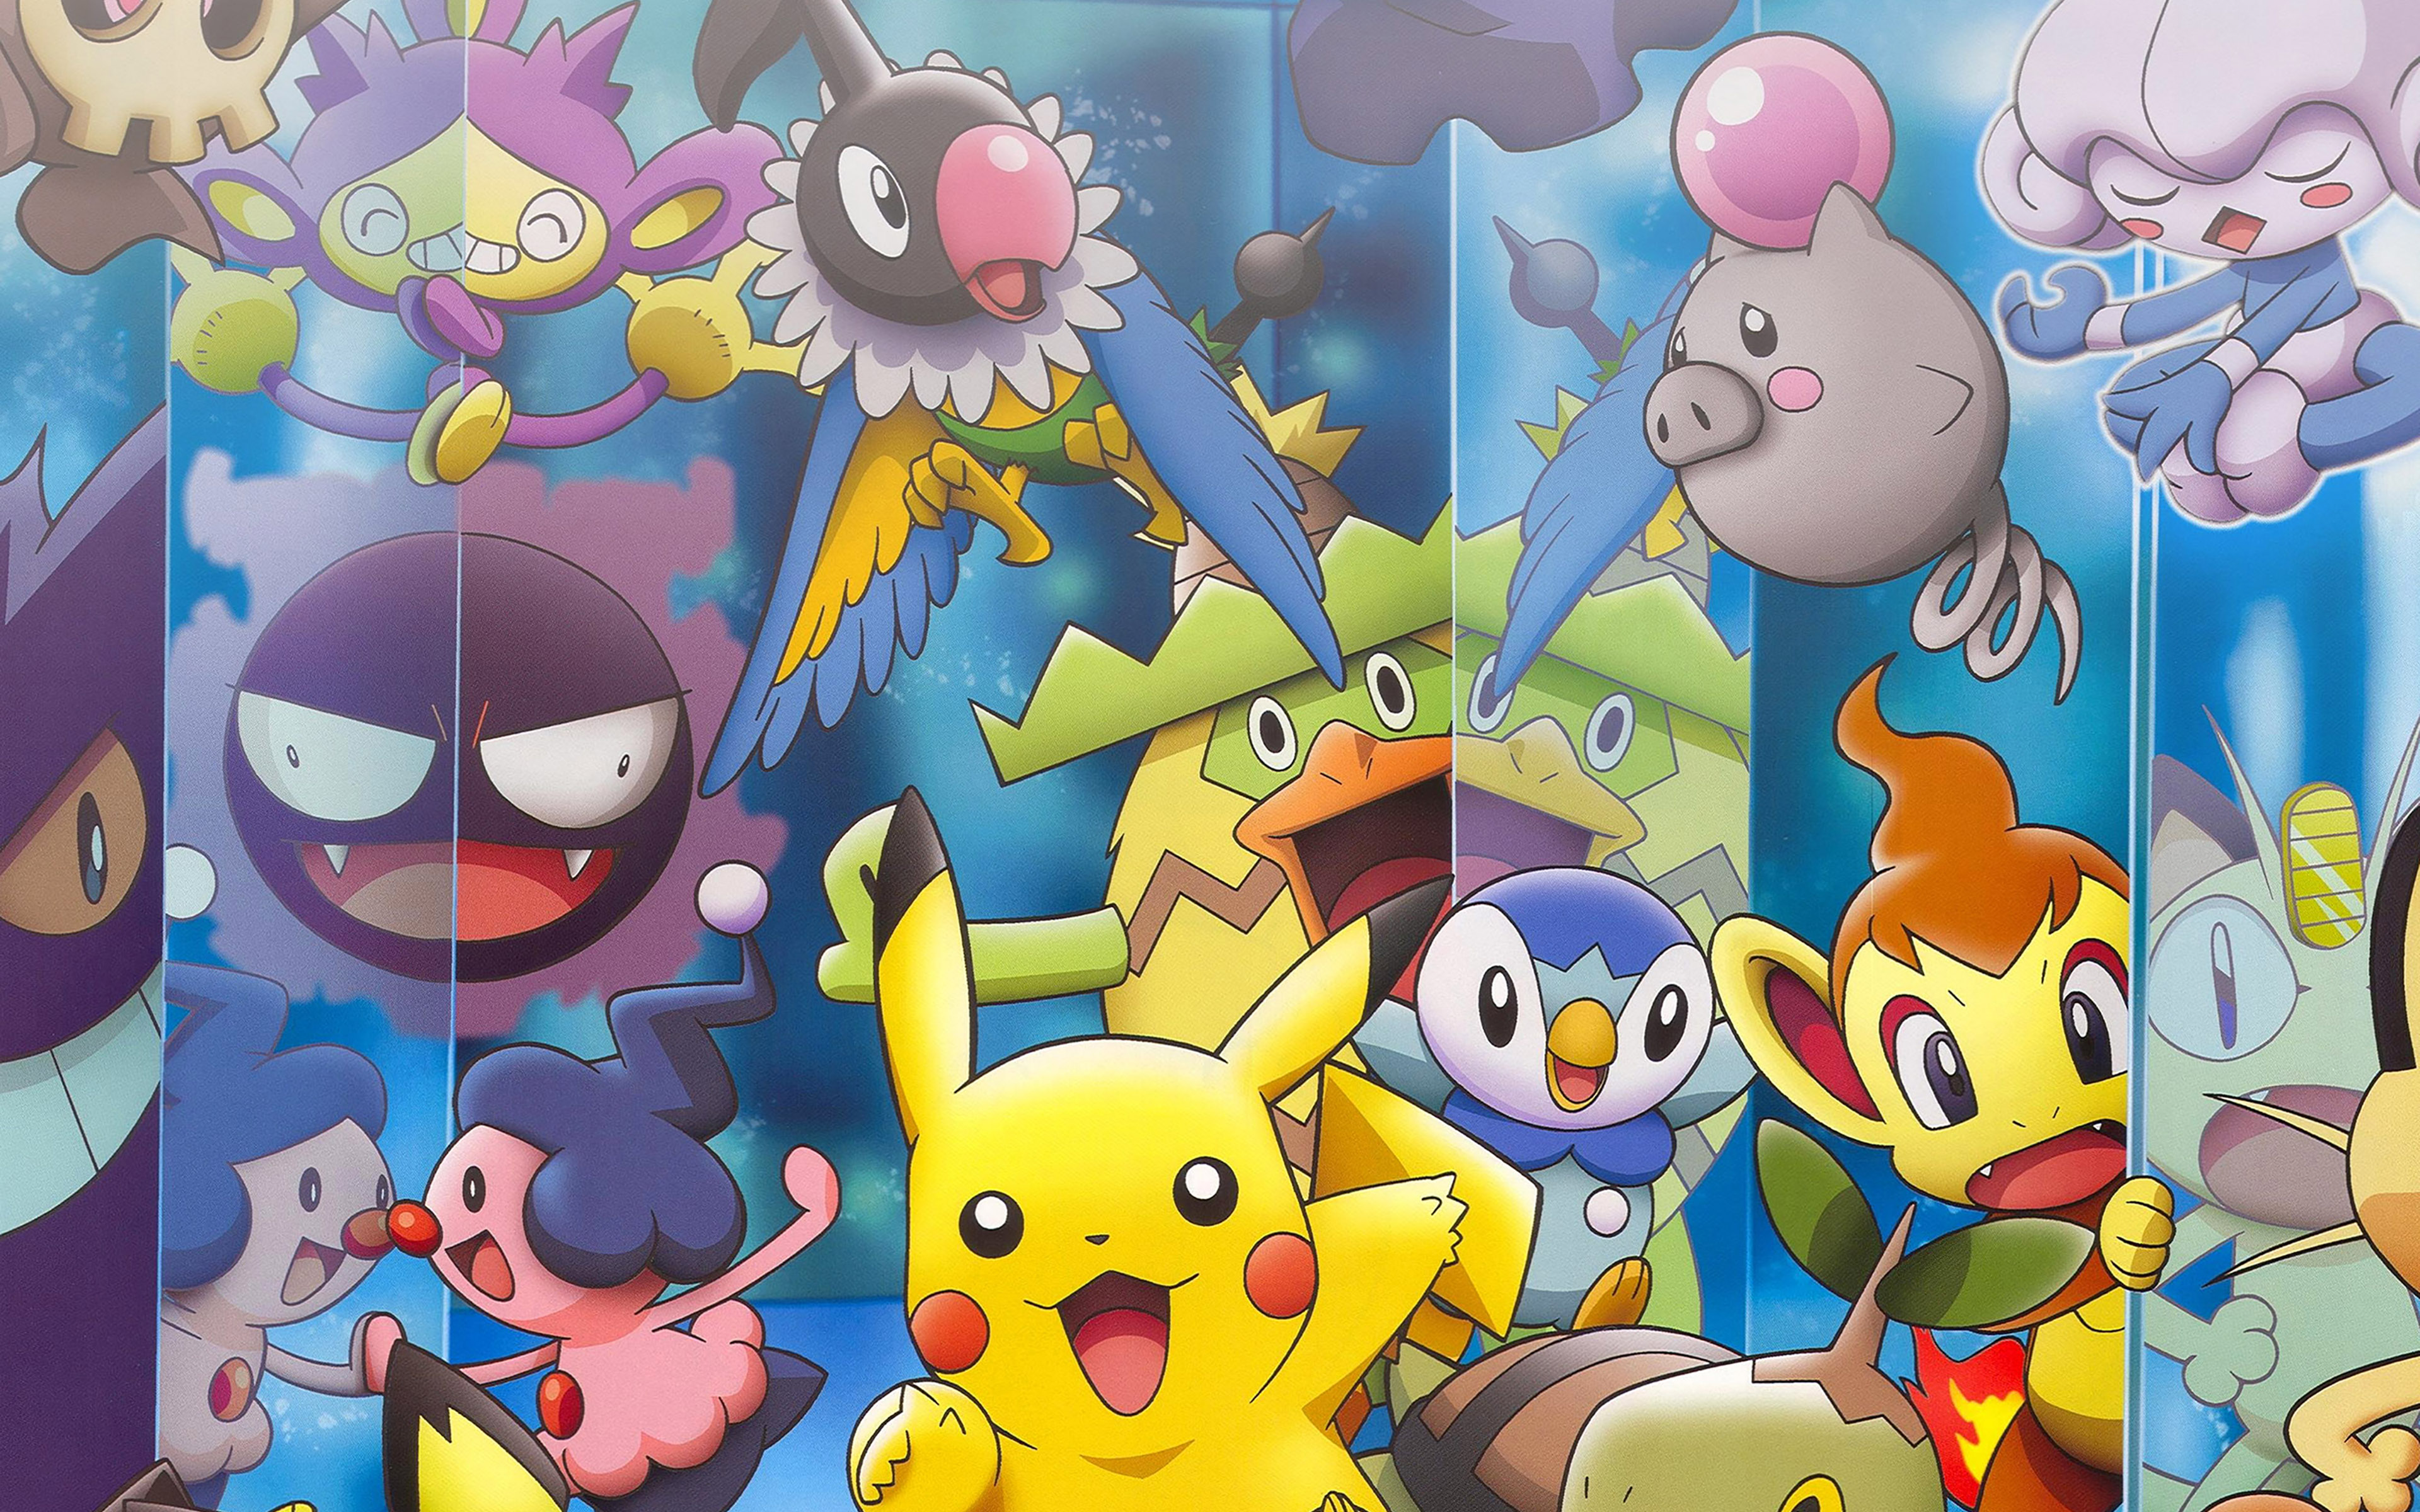 3840x1080 Wallpaper Classic Car Ab66 Wallpaper Pokemon Friends Anime Papers Co